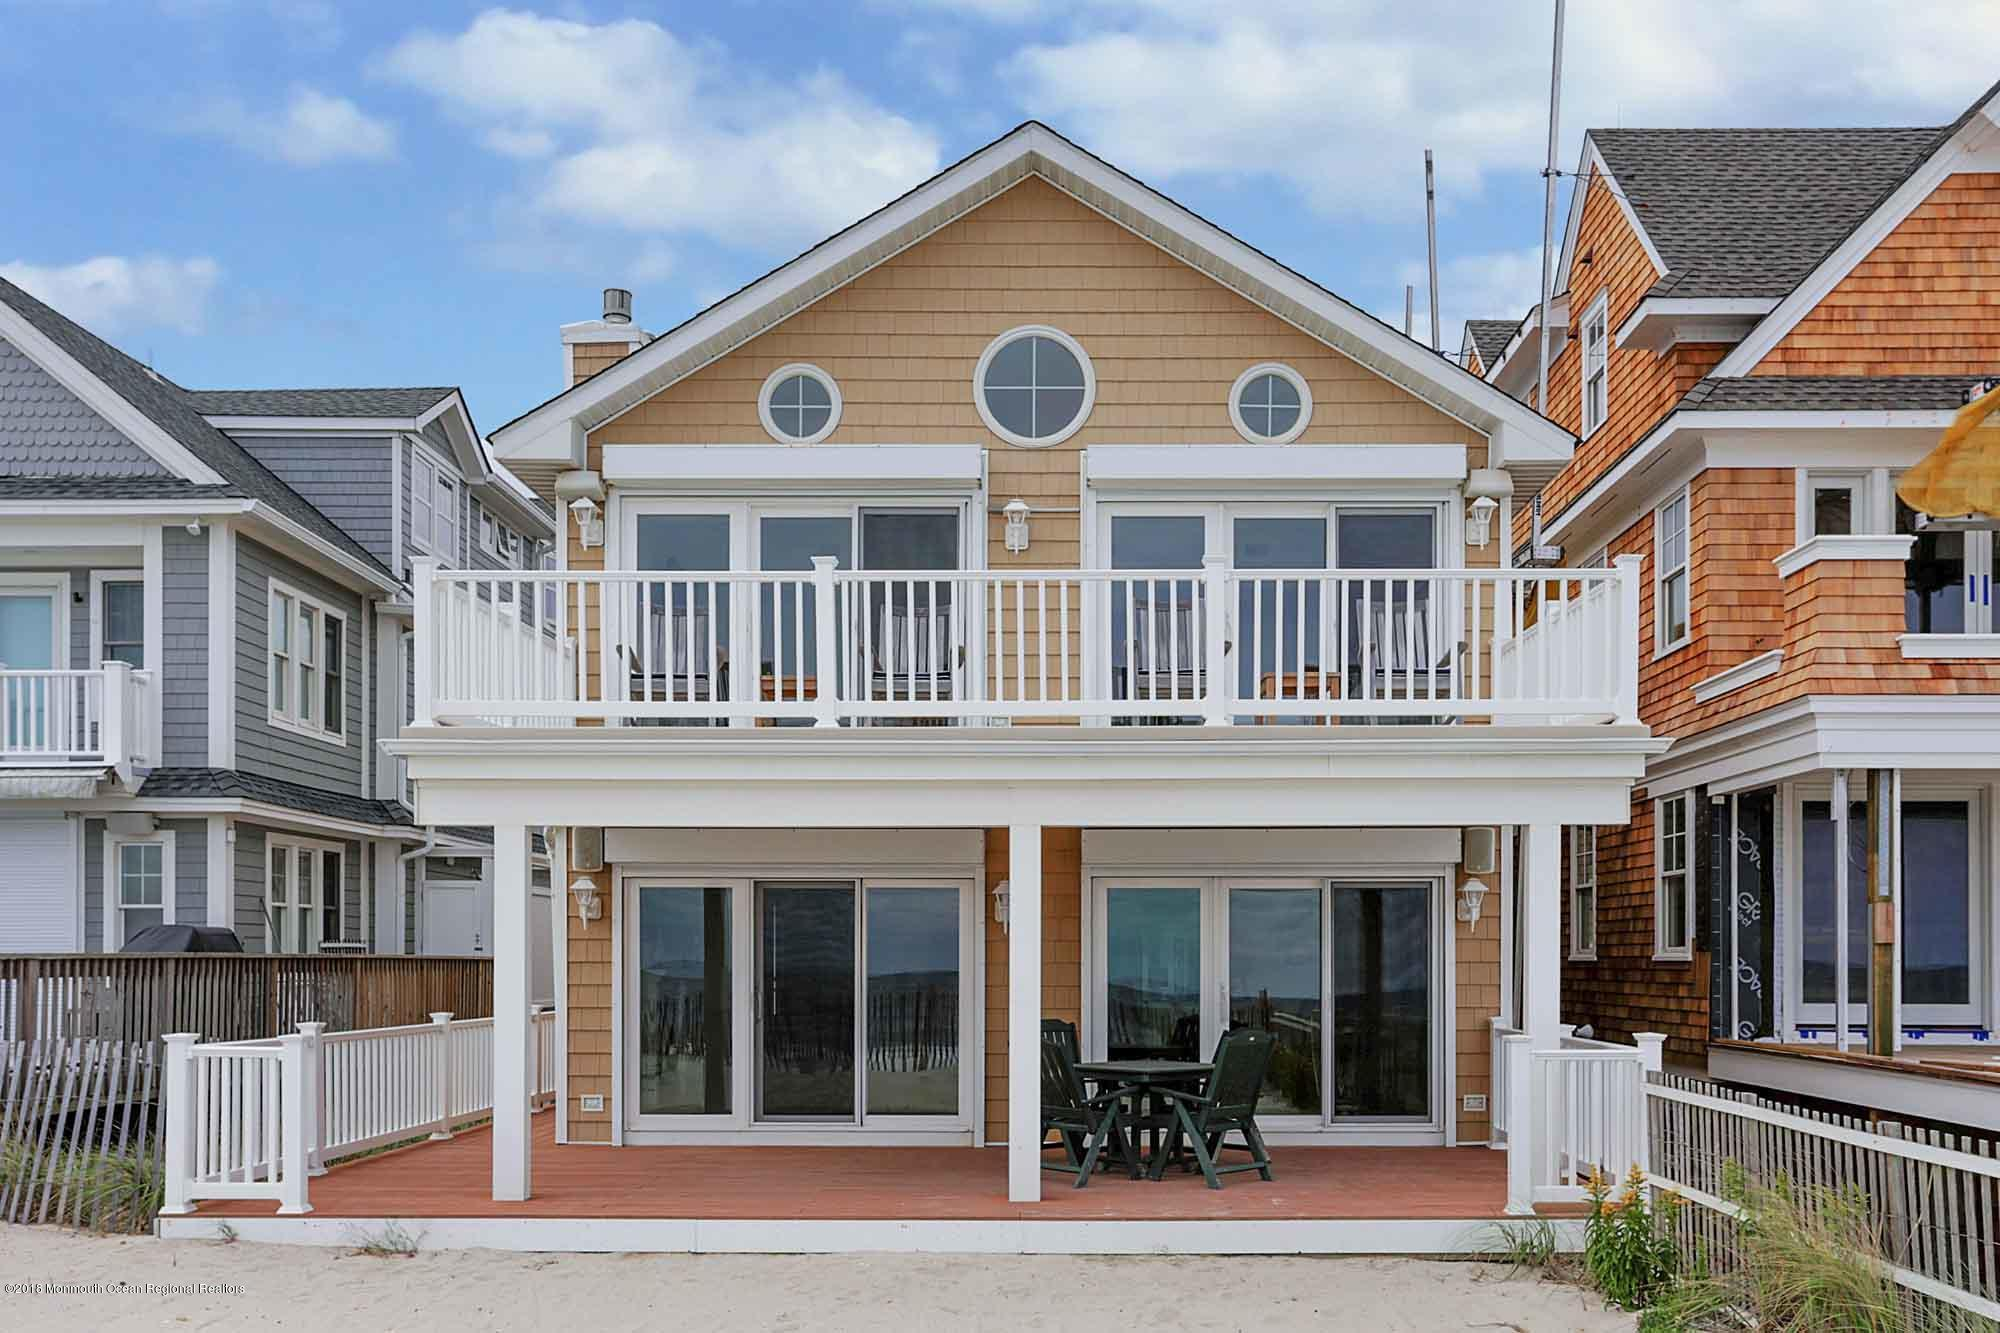 Photo of 3648 Ocean Terrace, Normandy Beach, NJ 08739